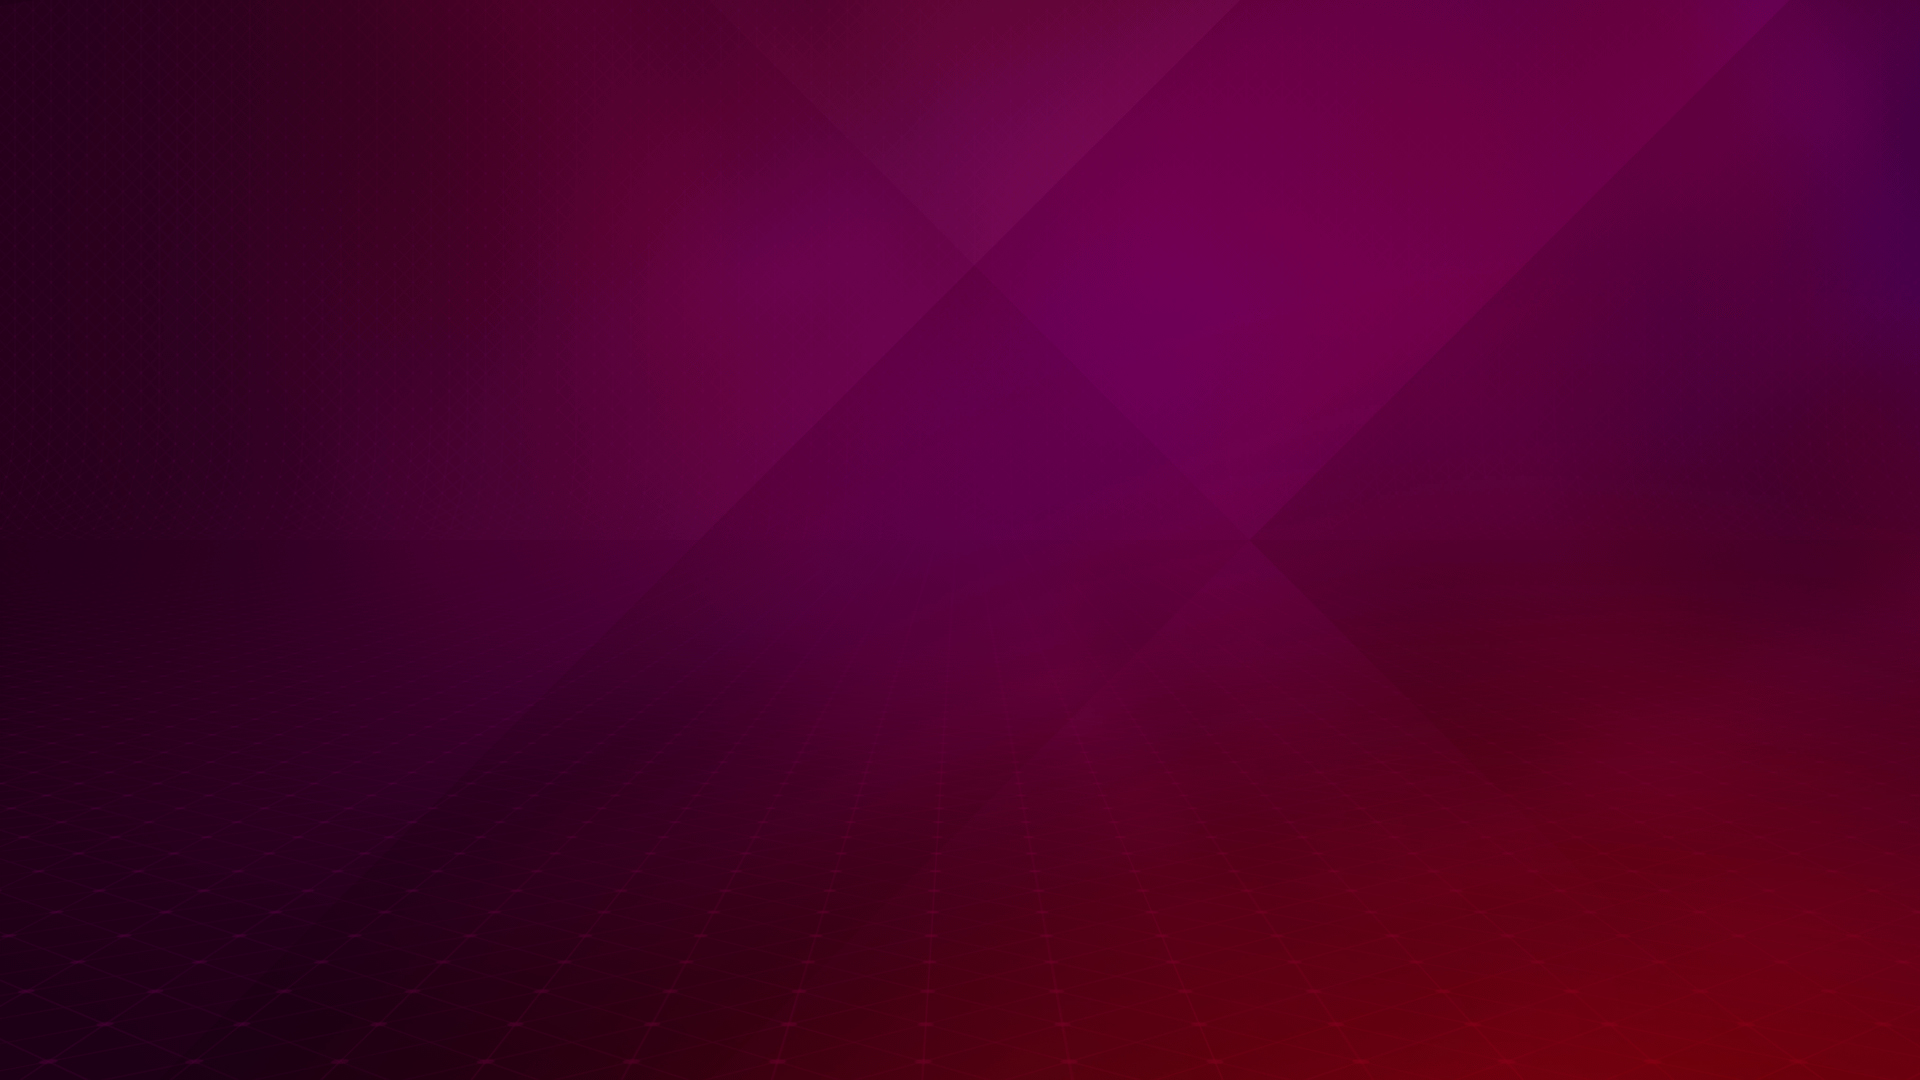 Online Design Of Home Ubuntu Wallpaper 15 10